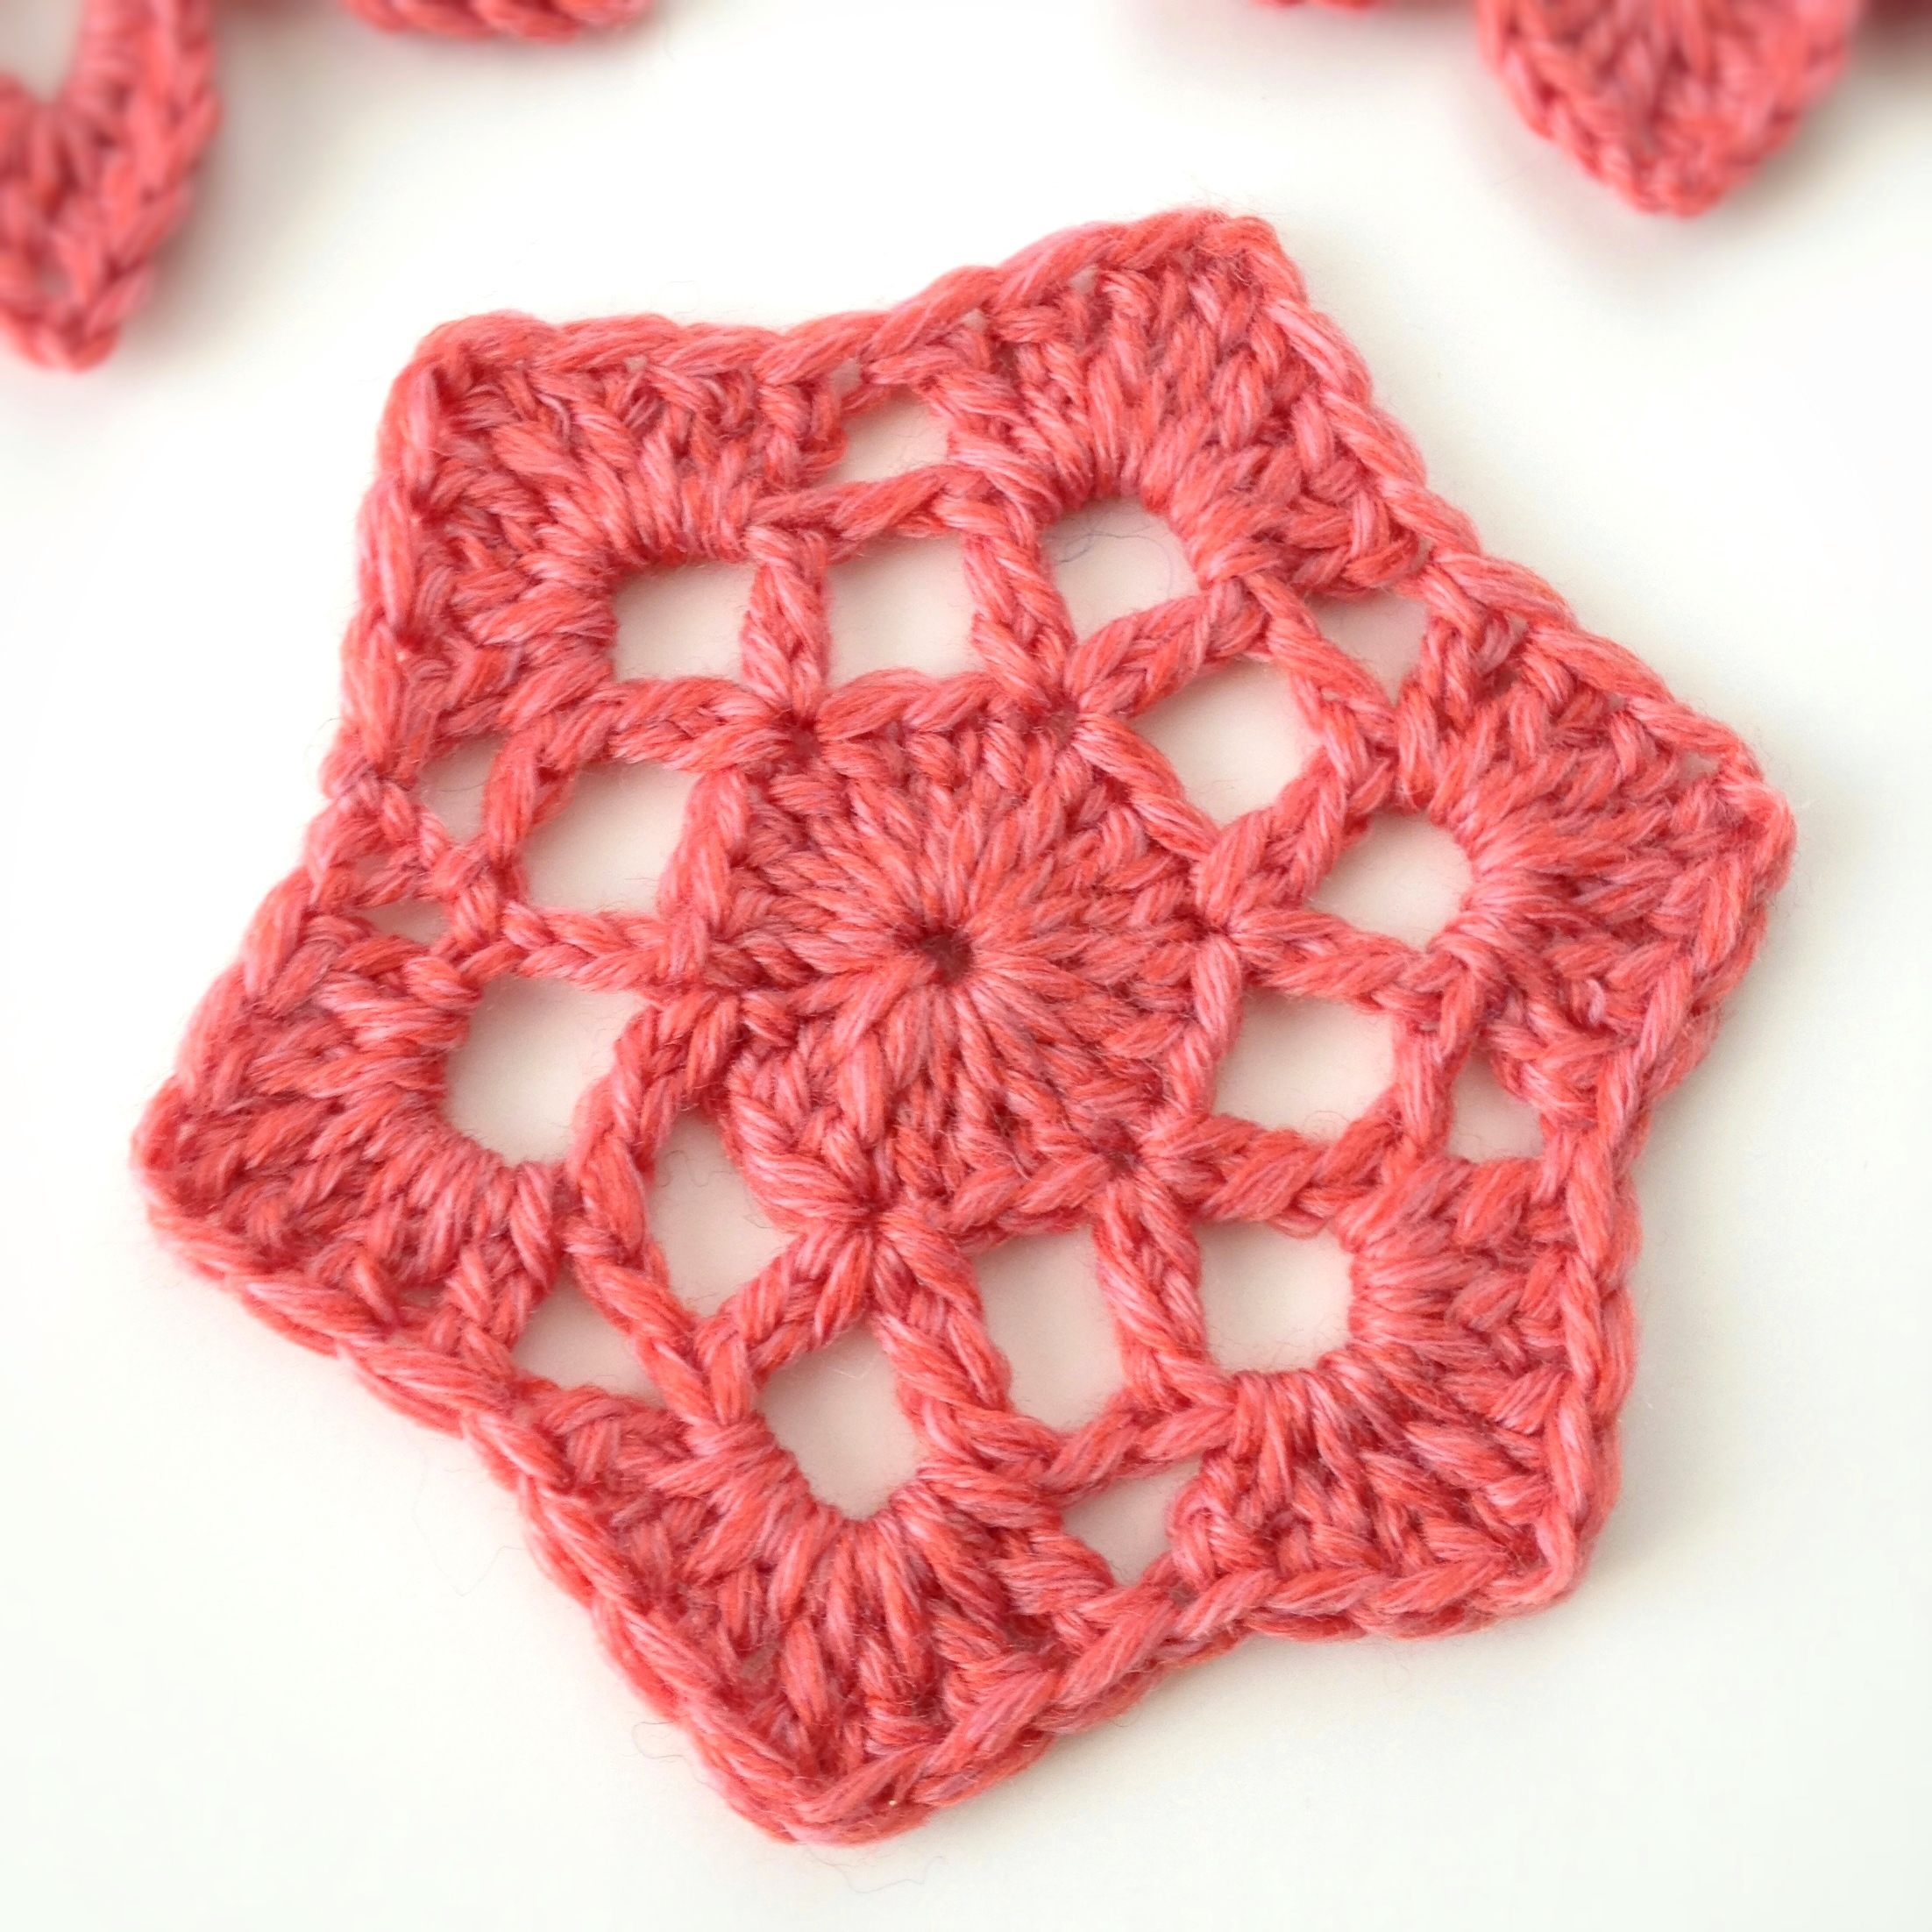 Crocheting How To : Crochet motif #53 from ?Beyond the Square Crochet Motifs?